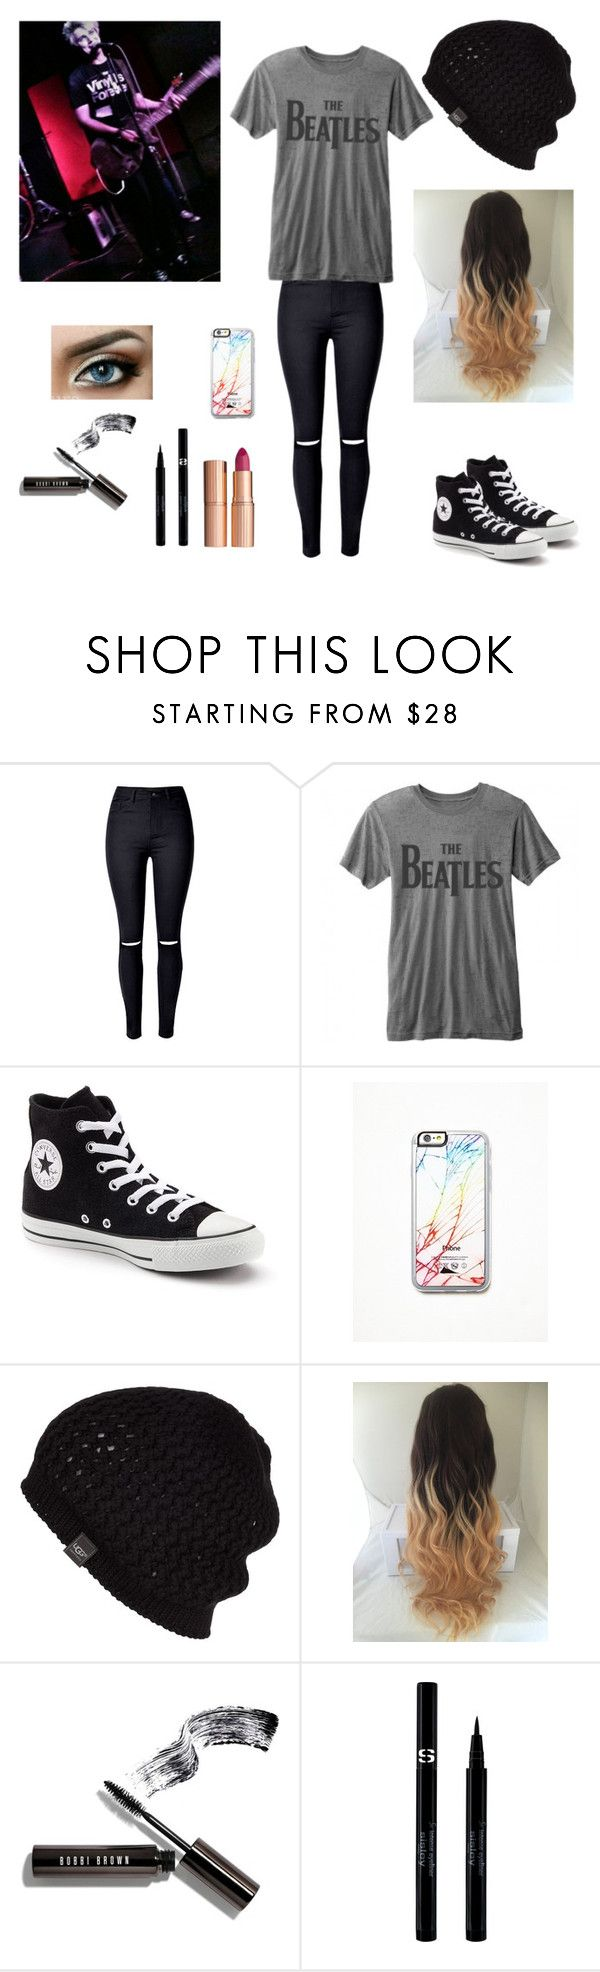 """seeing dalton at his show :))"" by chloegrenier ❤ liked on Polyvore featuring WithChic, Converse, Free People, UGG Australia, Bobbi Brown Cosmetics, Sisley and Charlotte Tilbury"